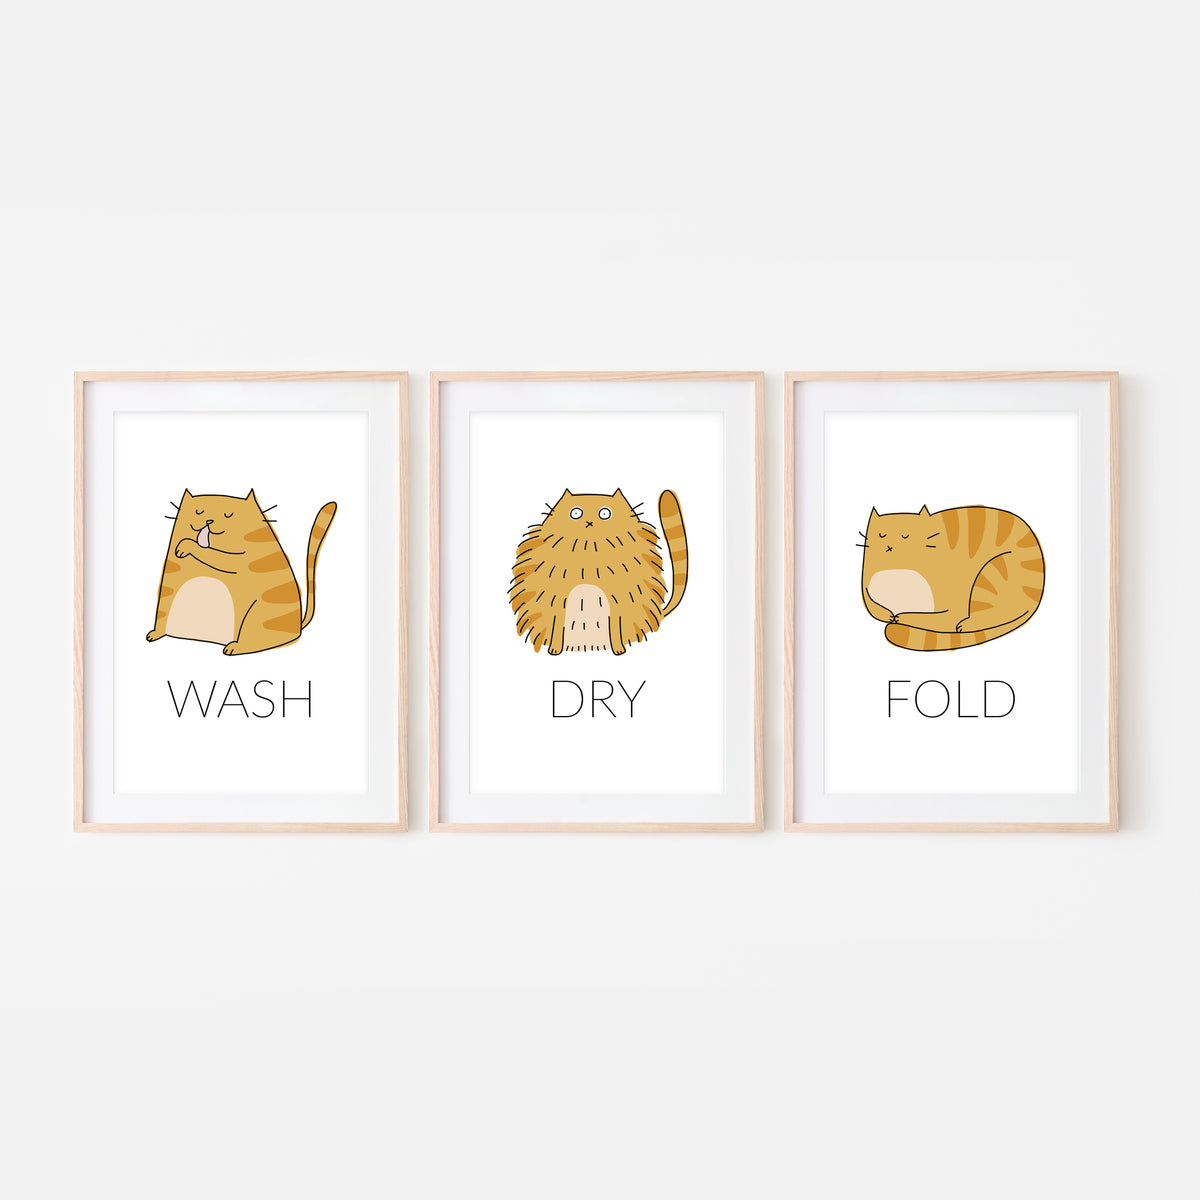 Posters Prints Tabby Kitty Cat Flowers Clothes Line Laundry Room Wash Day Wall Art Print Ftma Home Garden Accelerateur Hec Ca